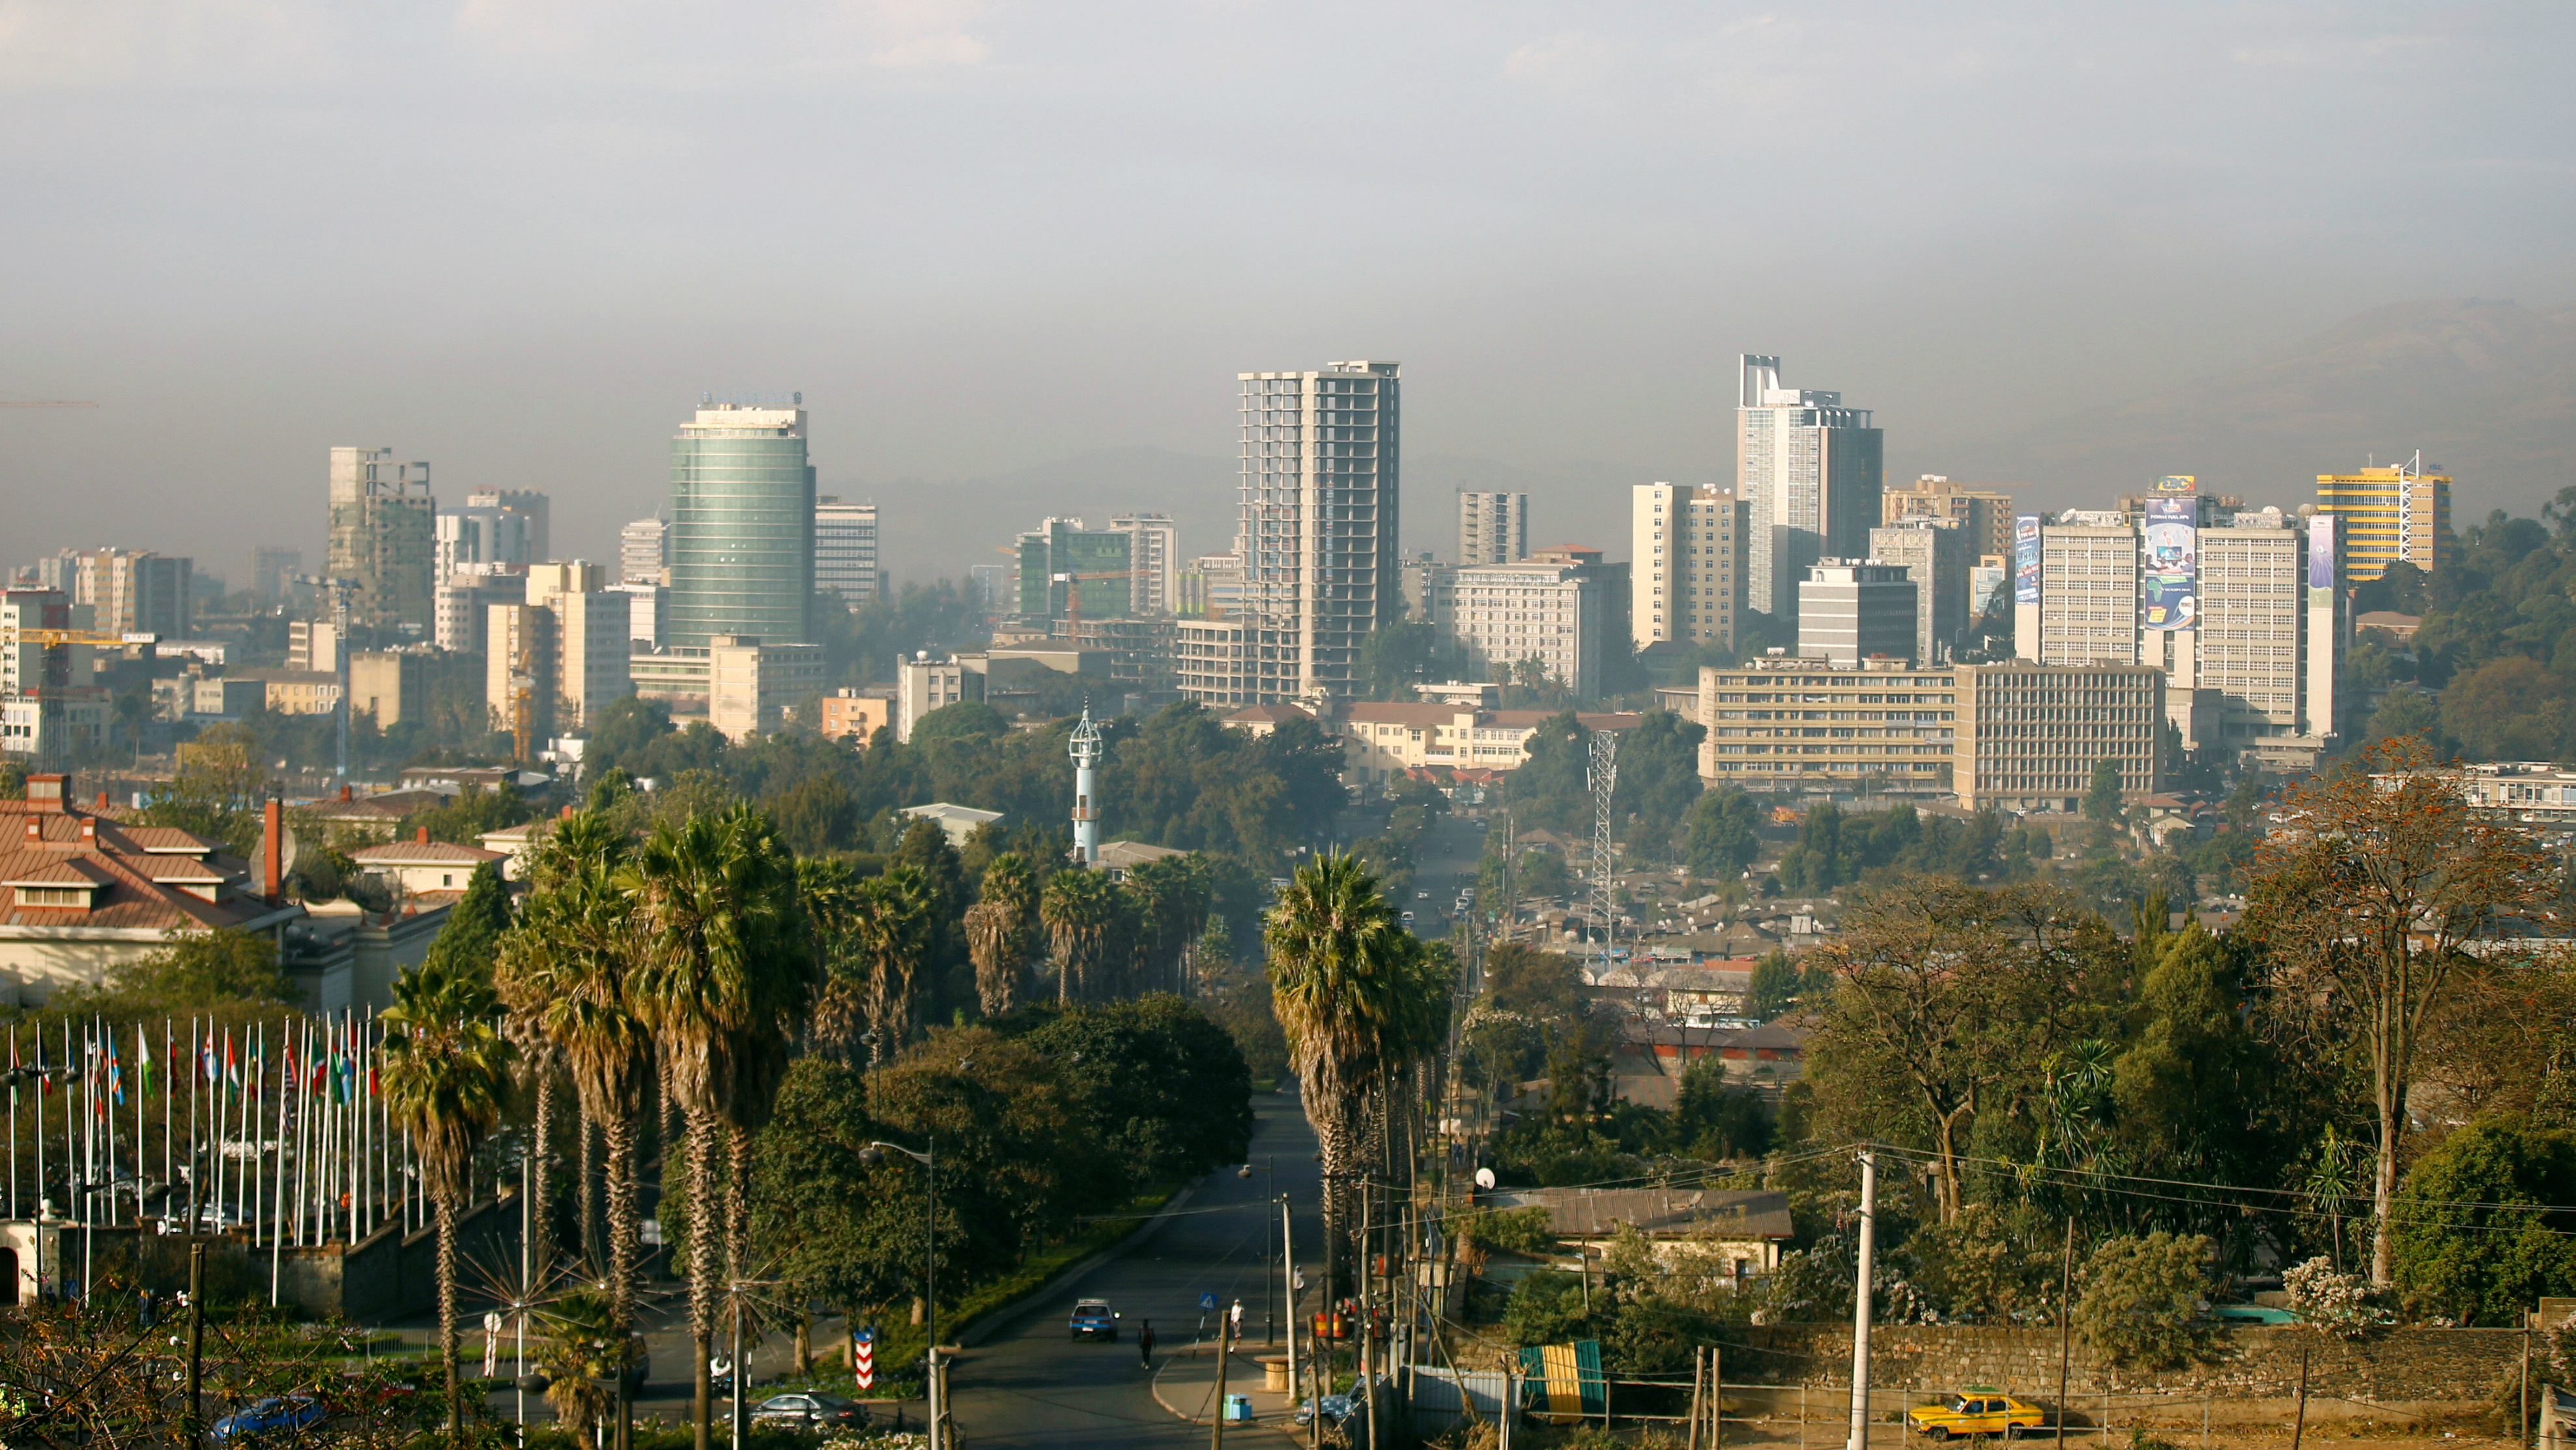 The cityscape of Addis Ababa